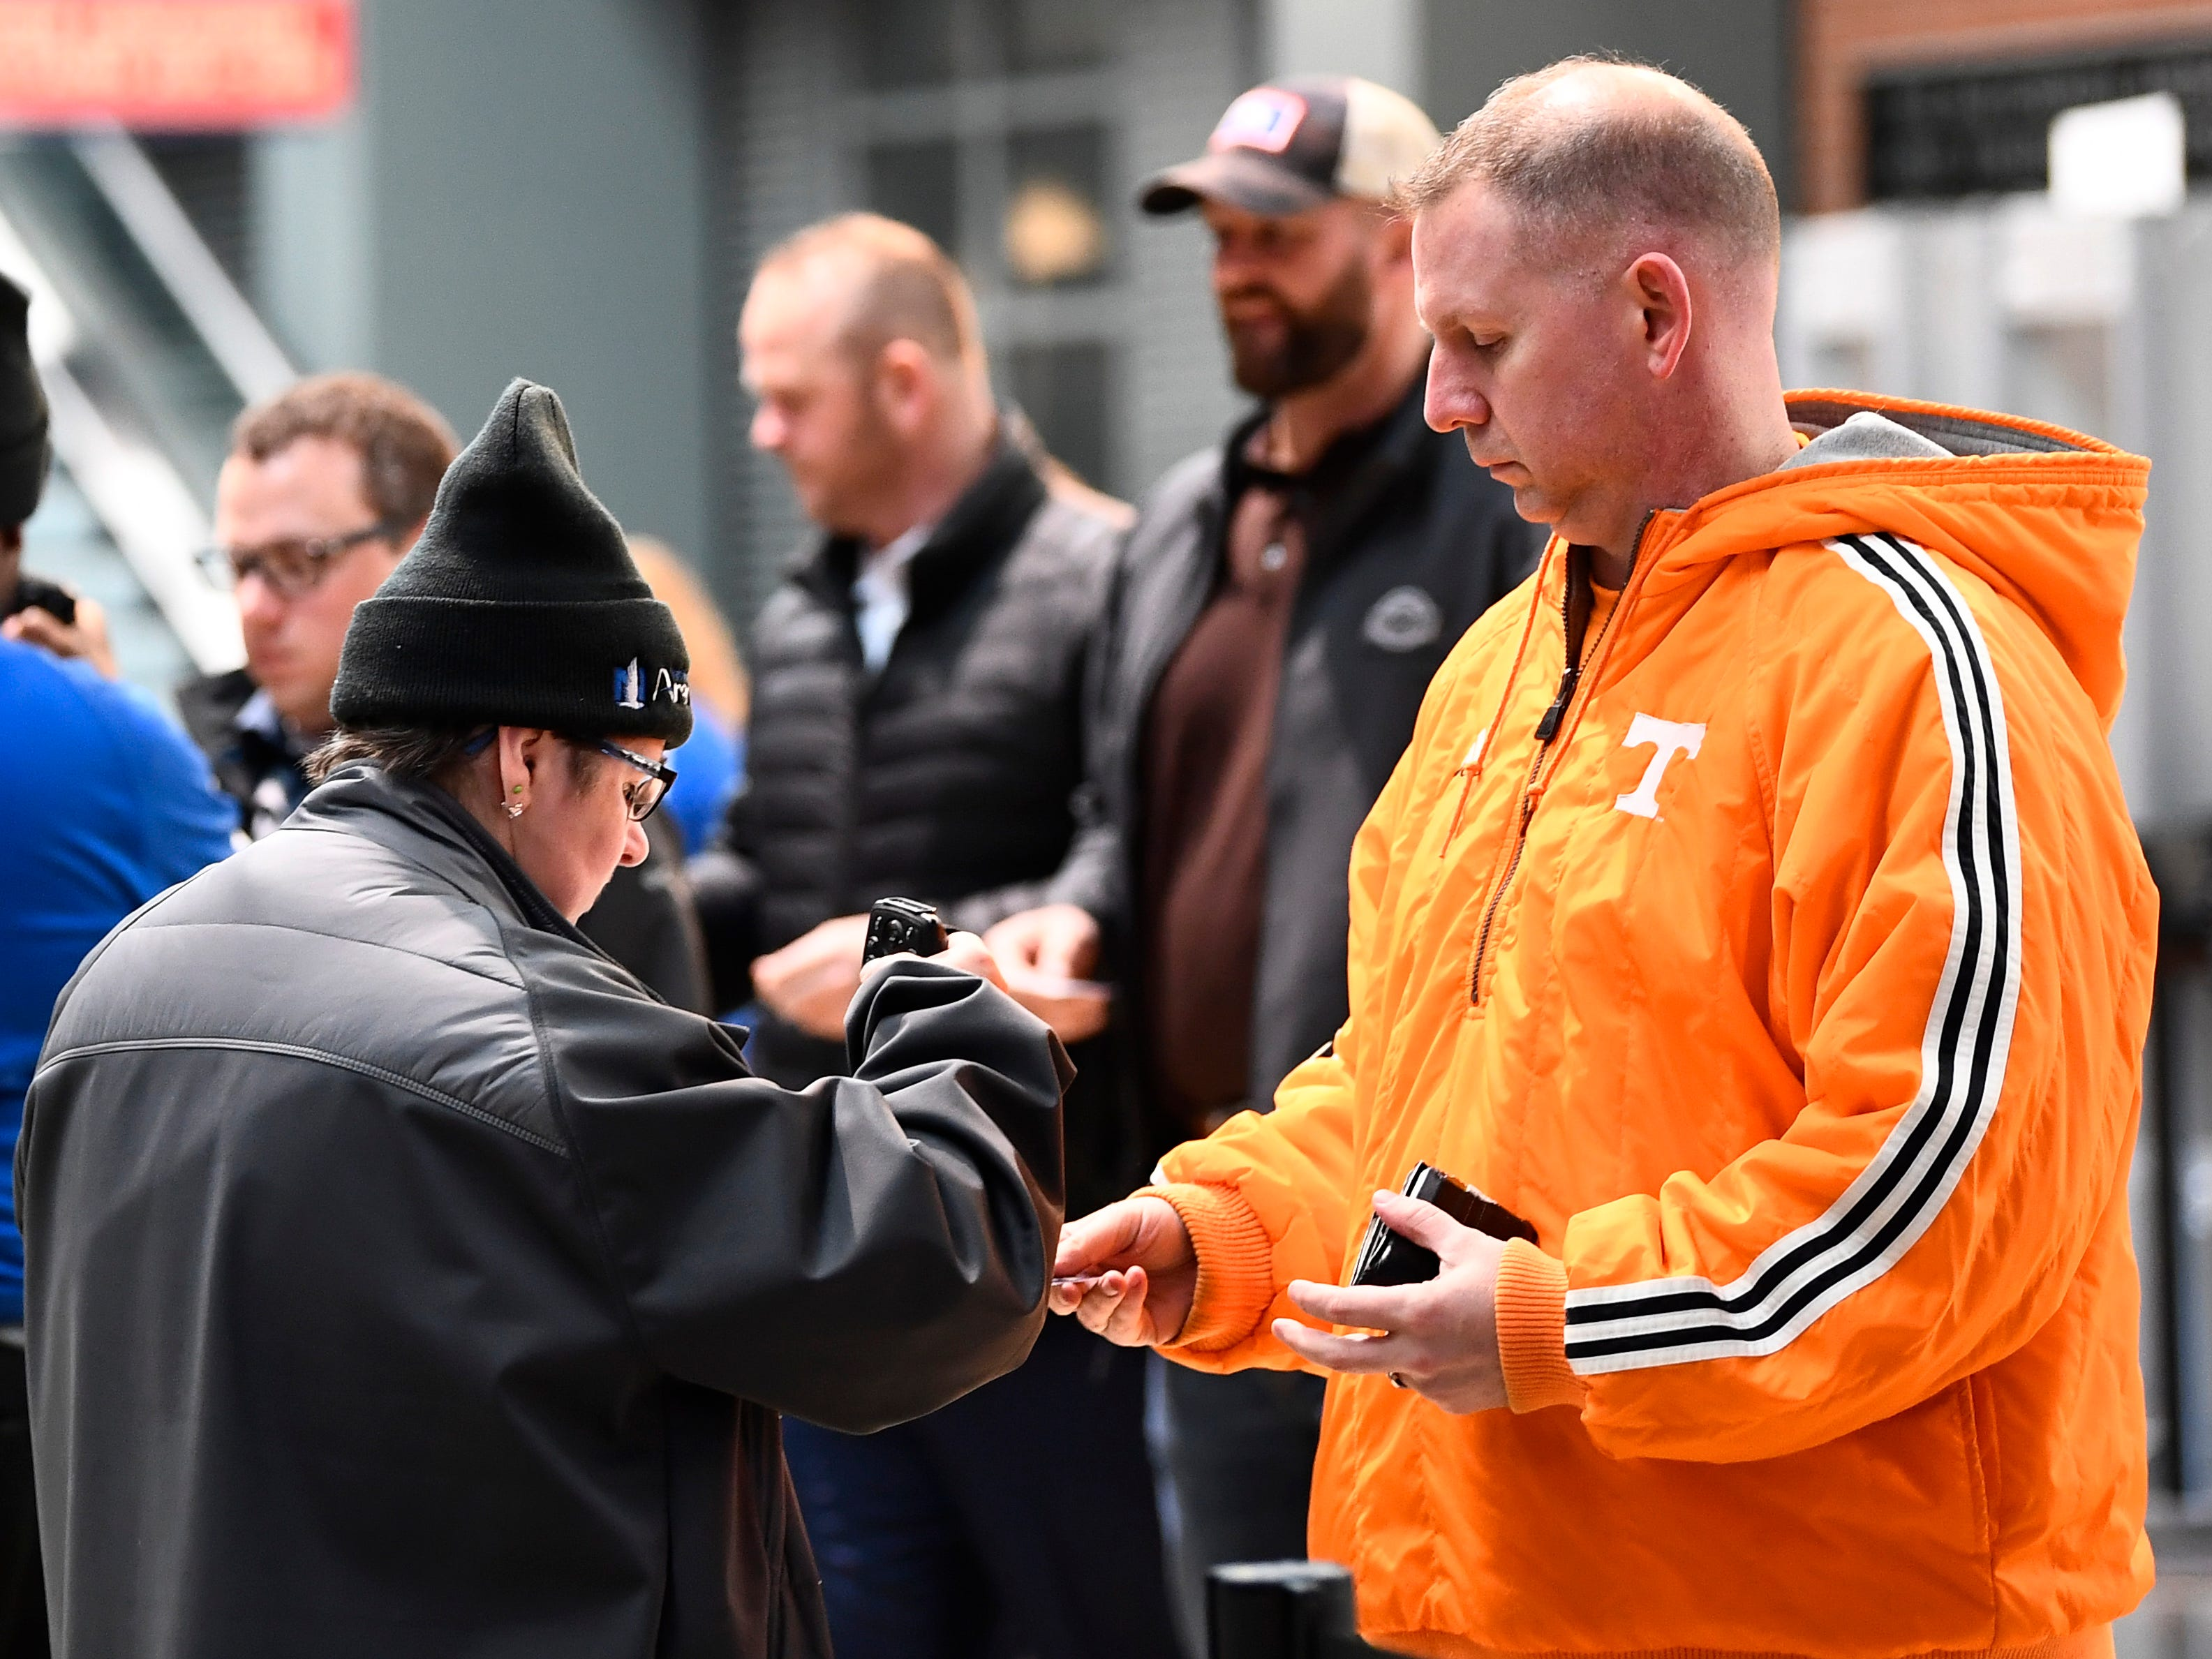 Fans have their tickets scanned before the Tennessee Volunteers' basketball game against the Colgate Raiders in the first round of the NCAA Tournament at Nationwide Arena in Columbus, Ohio, on Friday, March 22, 2019.